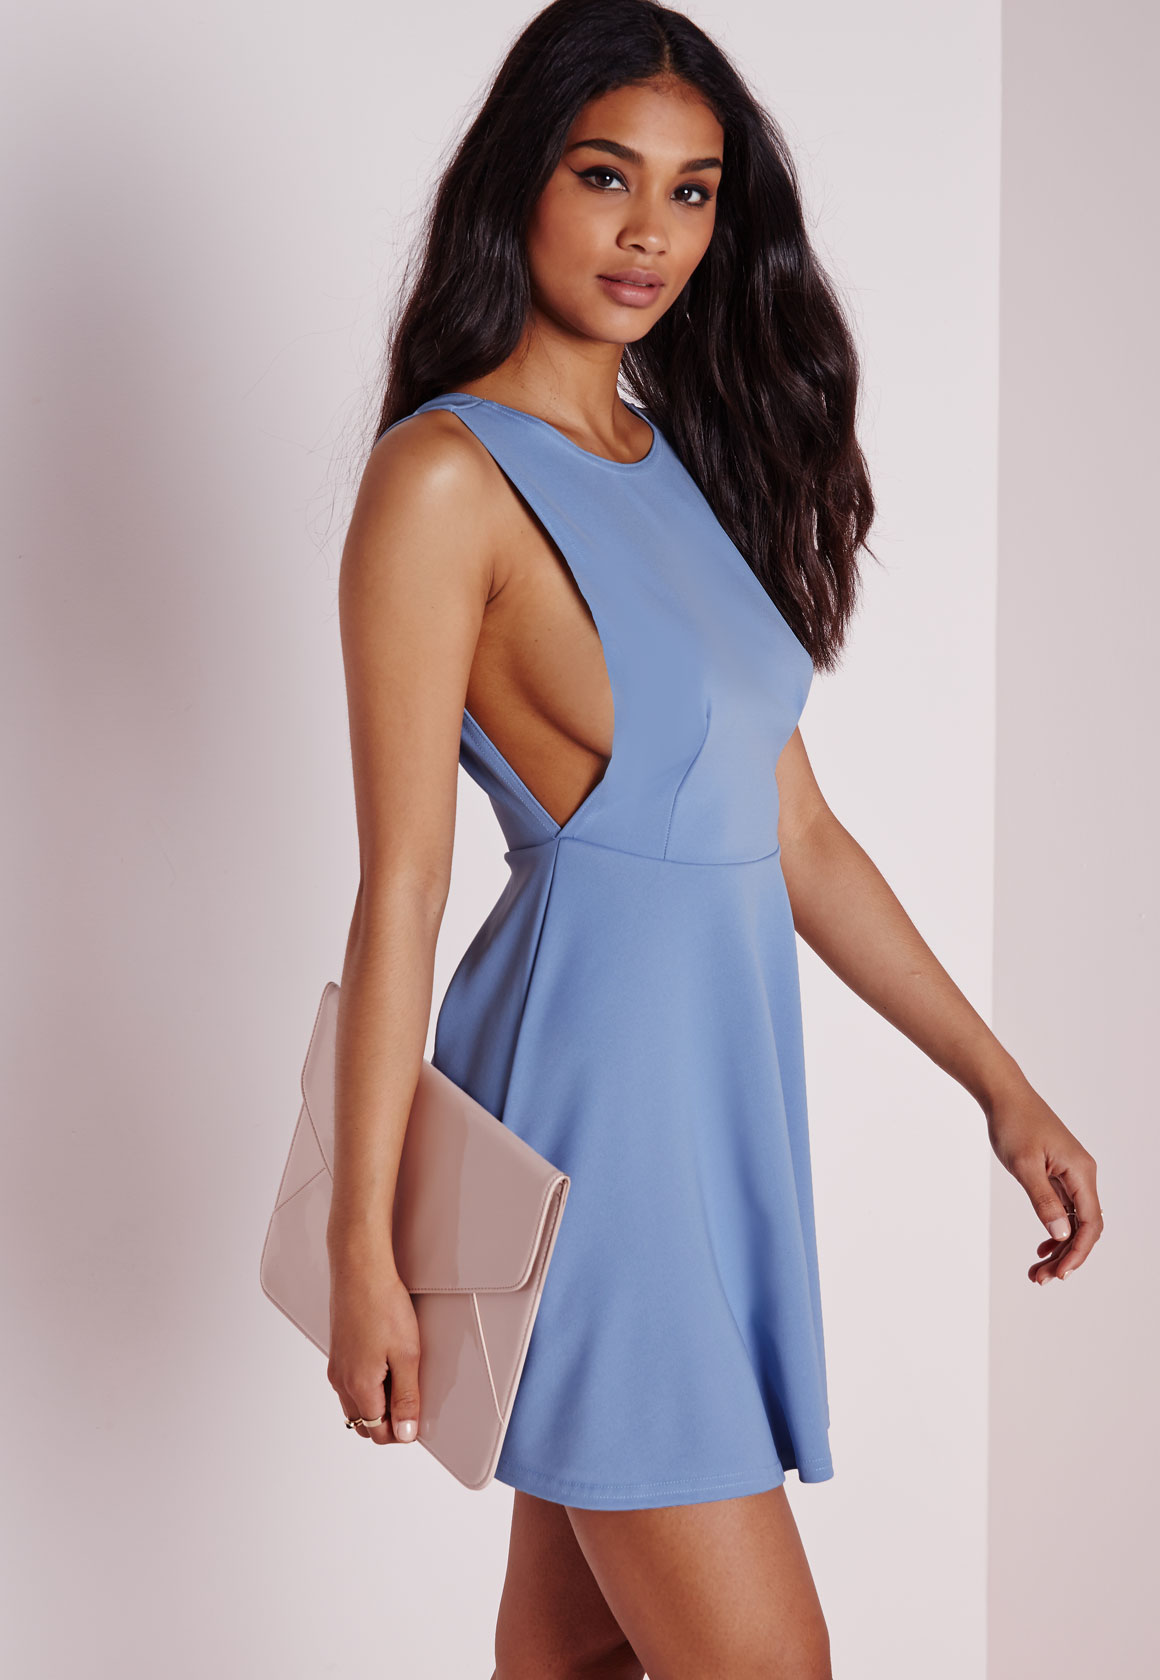 Shop Missguided online and buy Back Skater Dress Powder Blue by Missguided